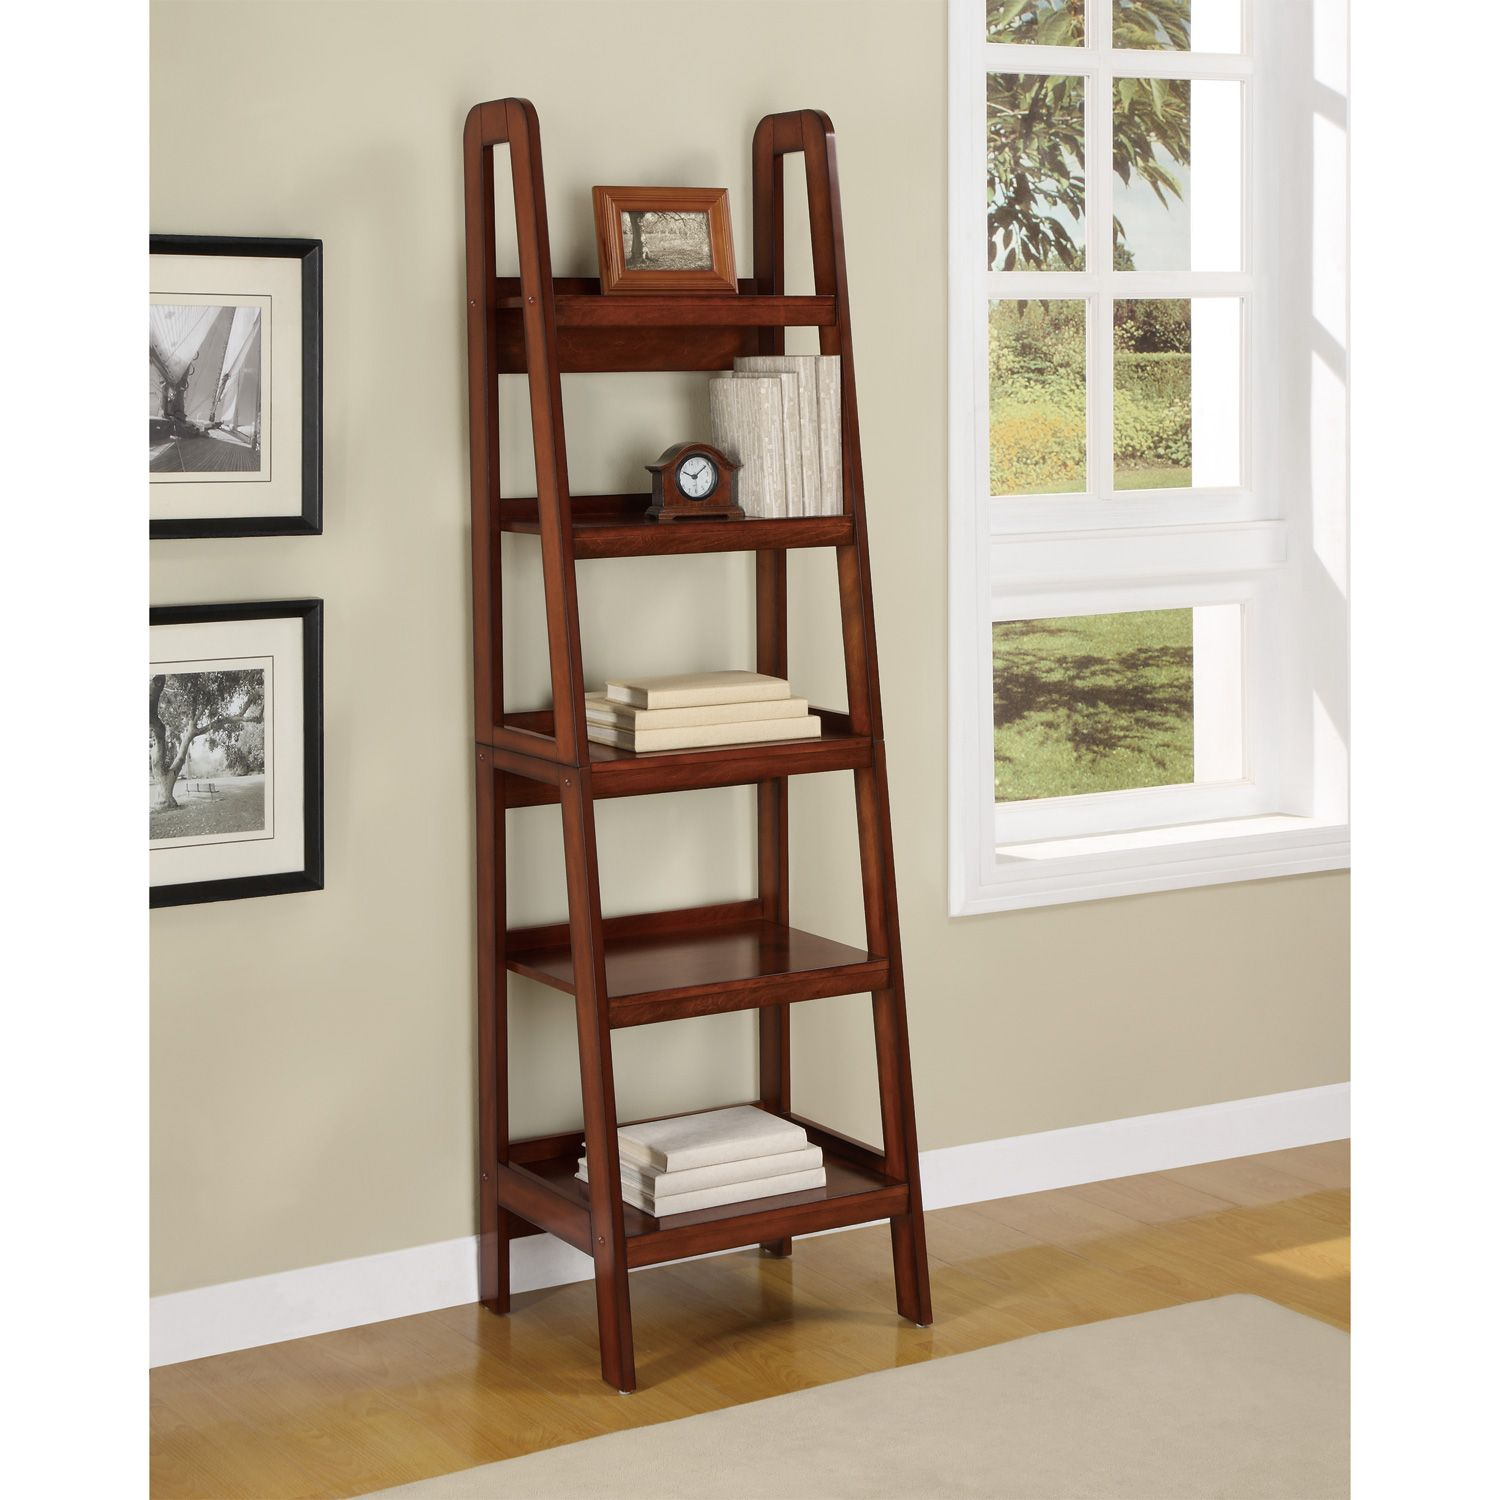 Details about Harlan Ladder Style Bookcase